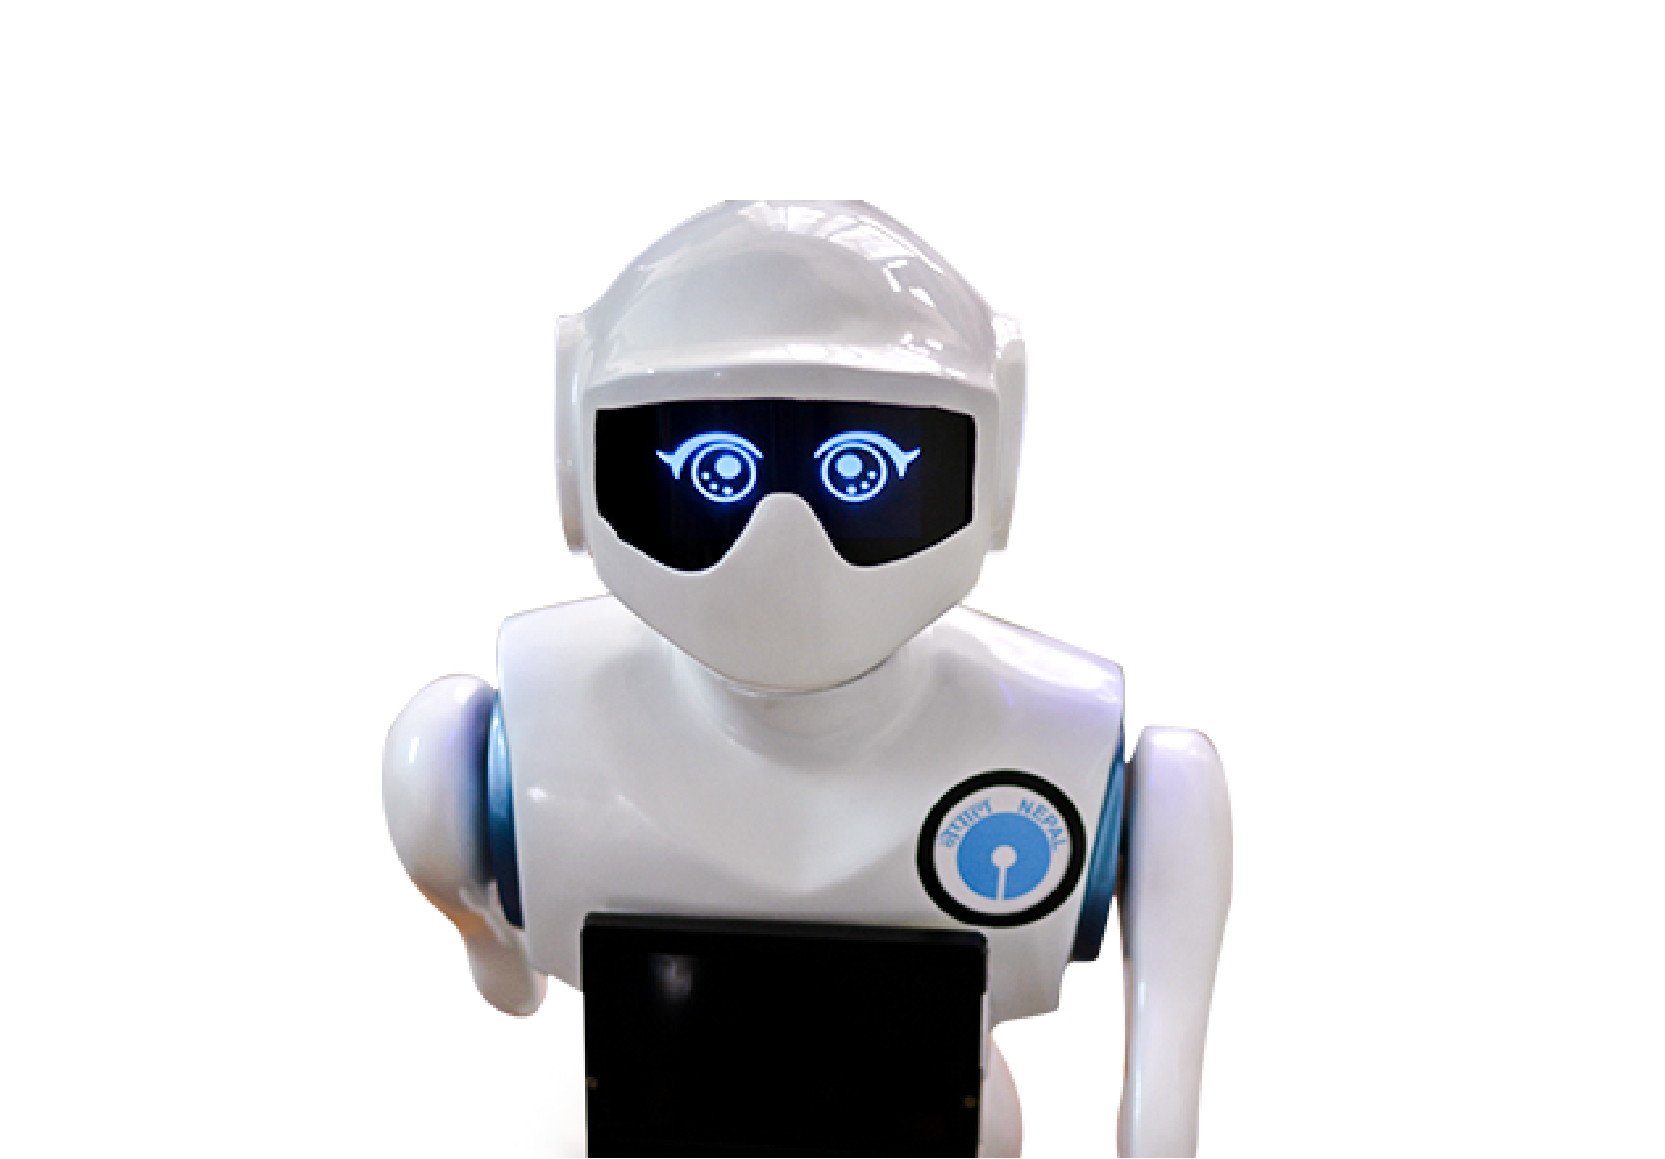 Humanoid Robot Pari for human interaction powered by advanced AI technologies.